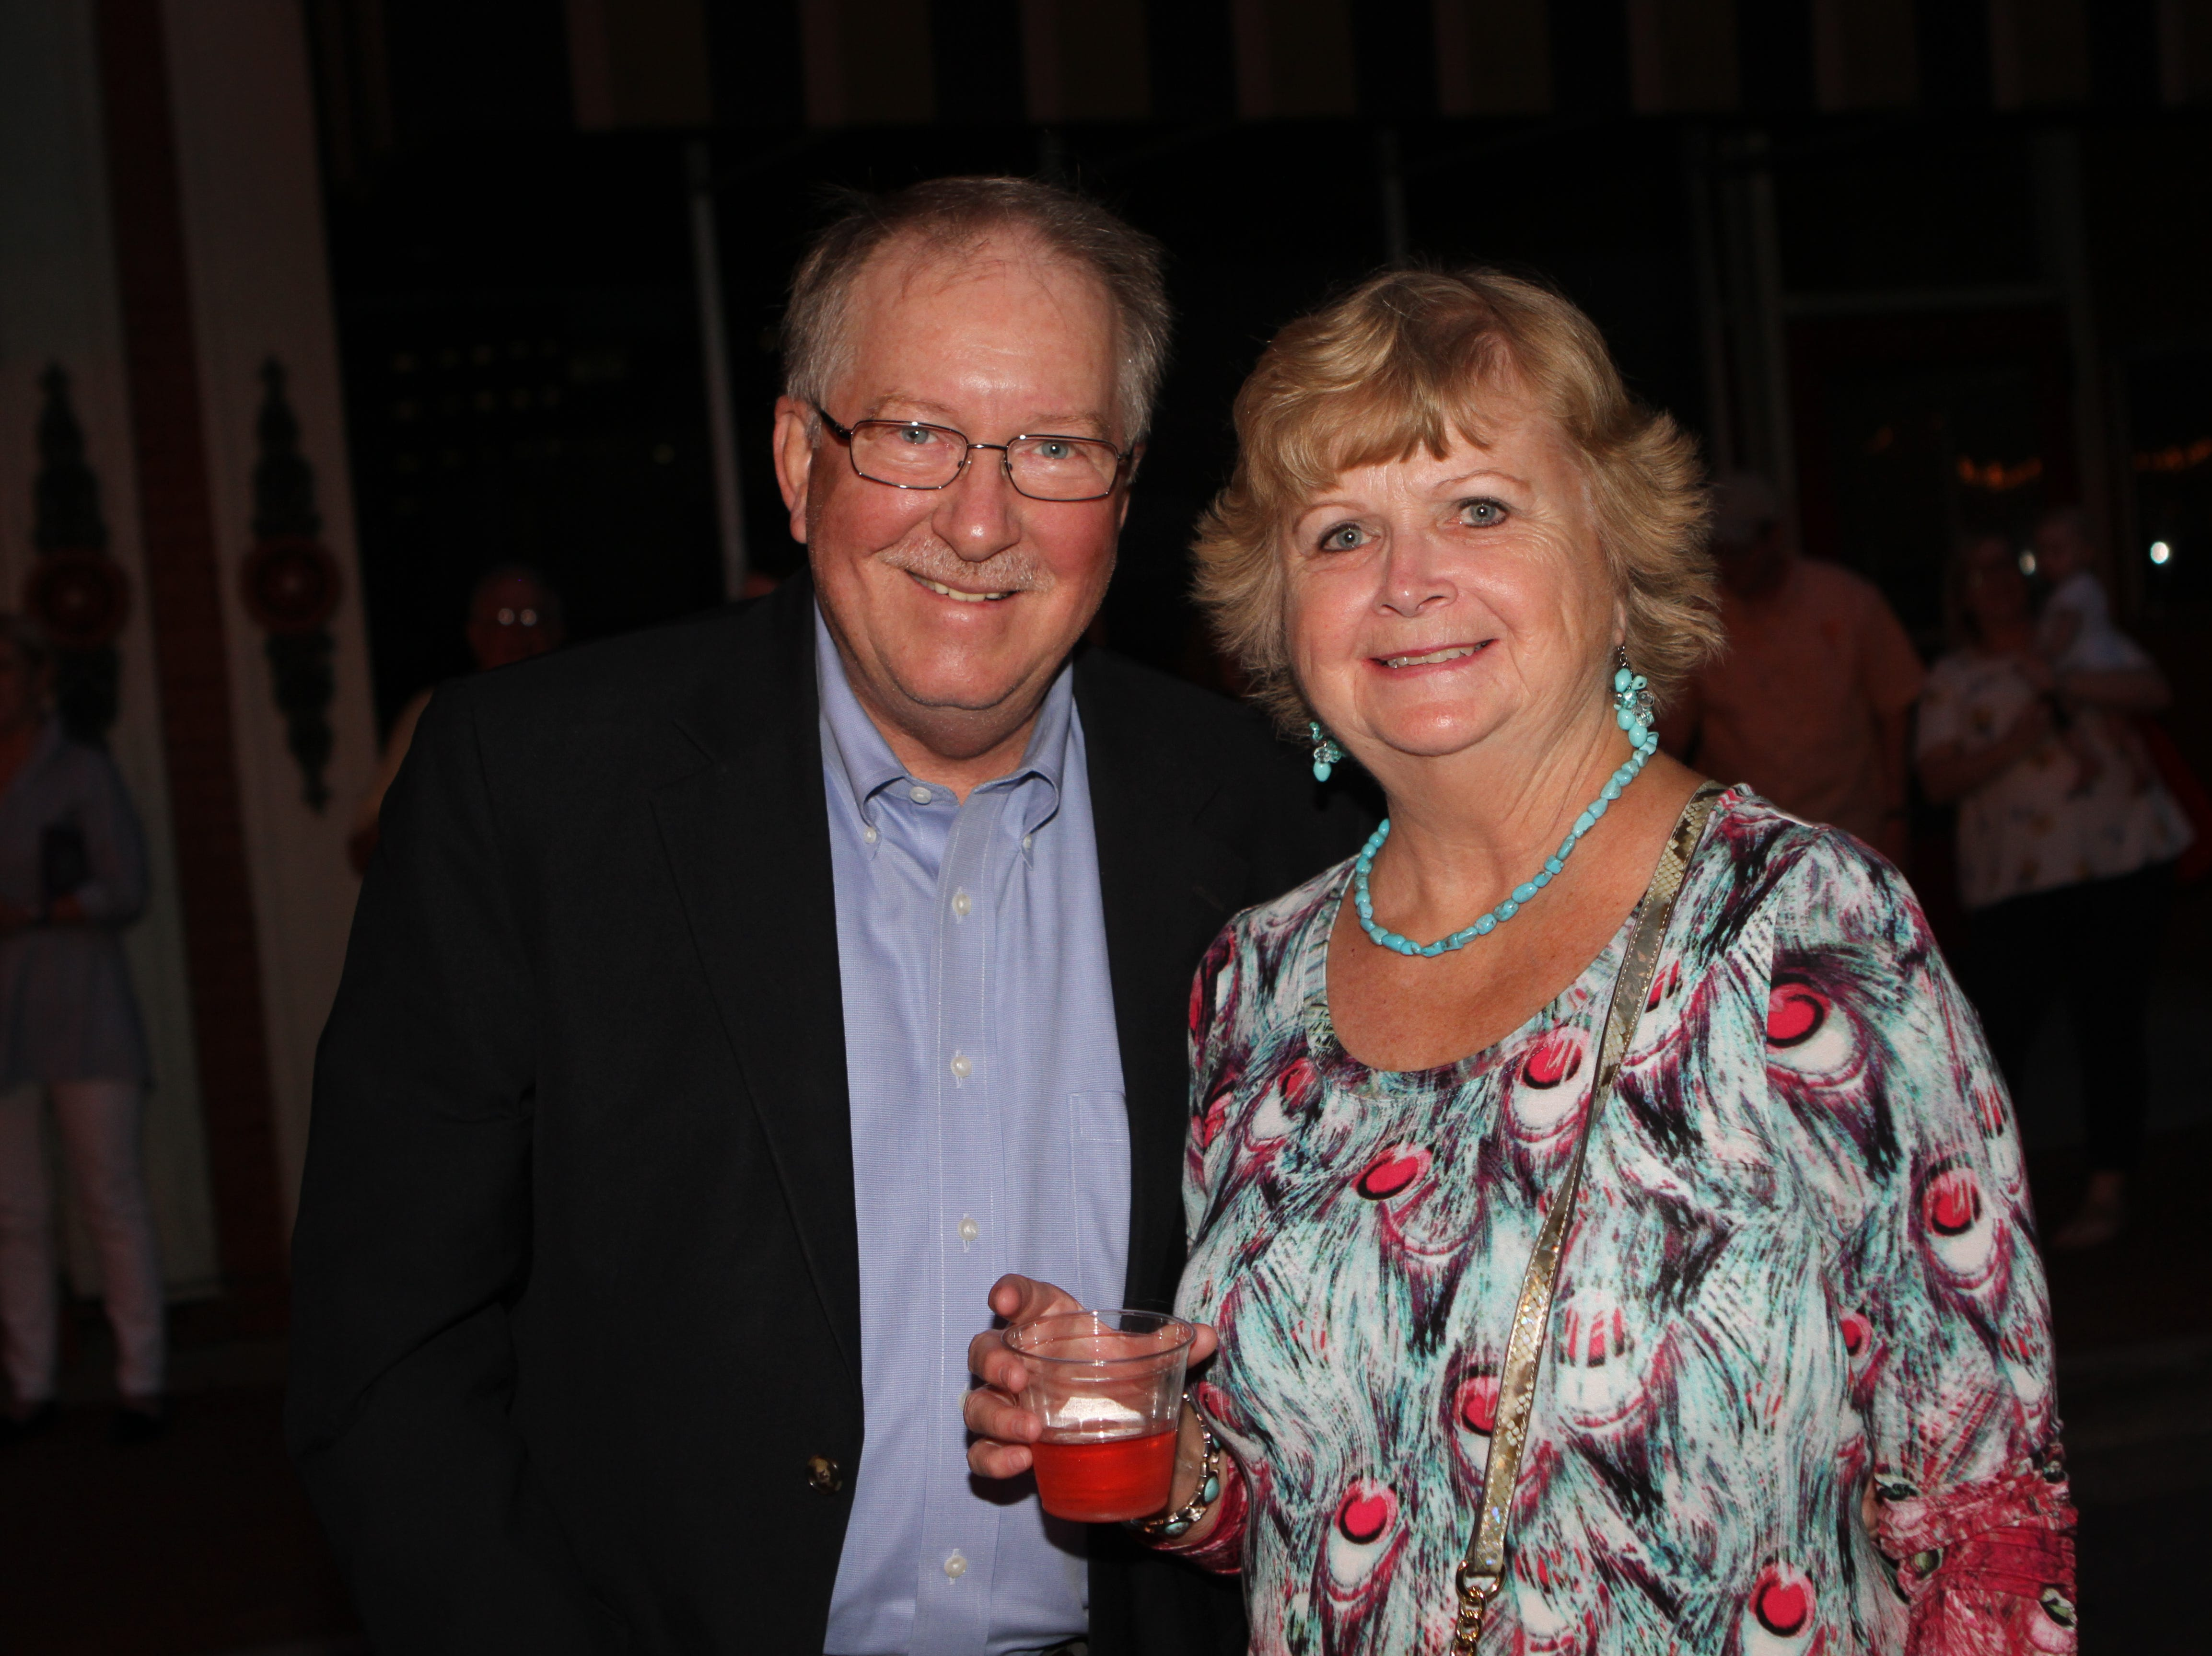 Frank Lott and Patti Marquess at the United Way of Clarksville and Roxy Regional Theatre event Thursday night.